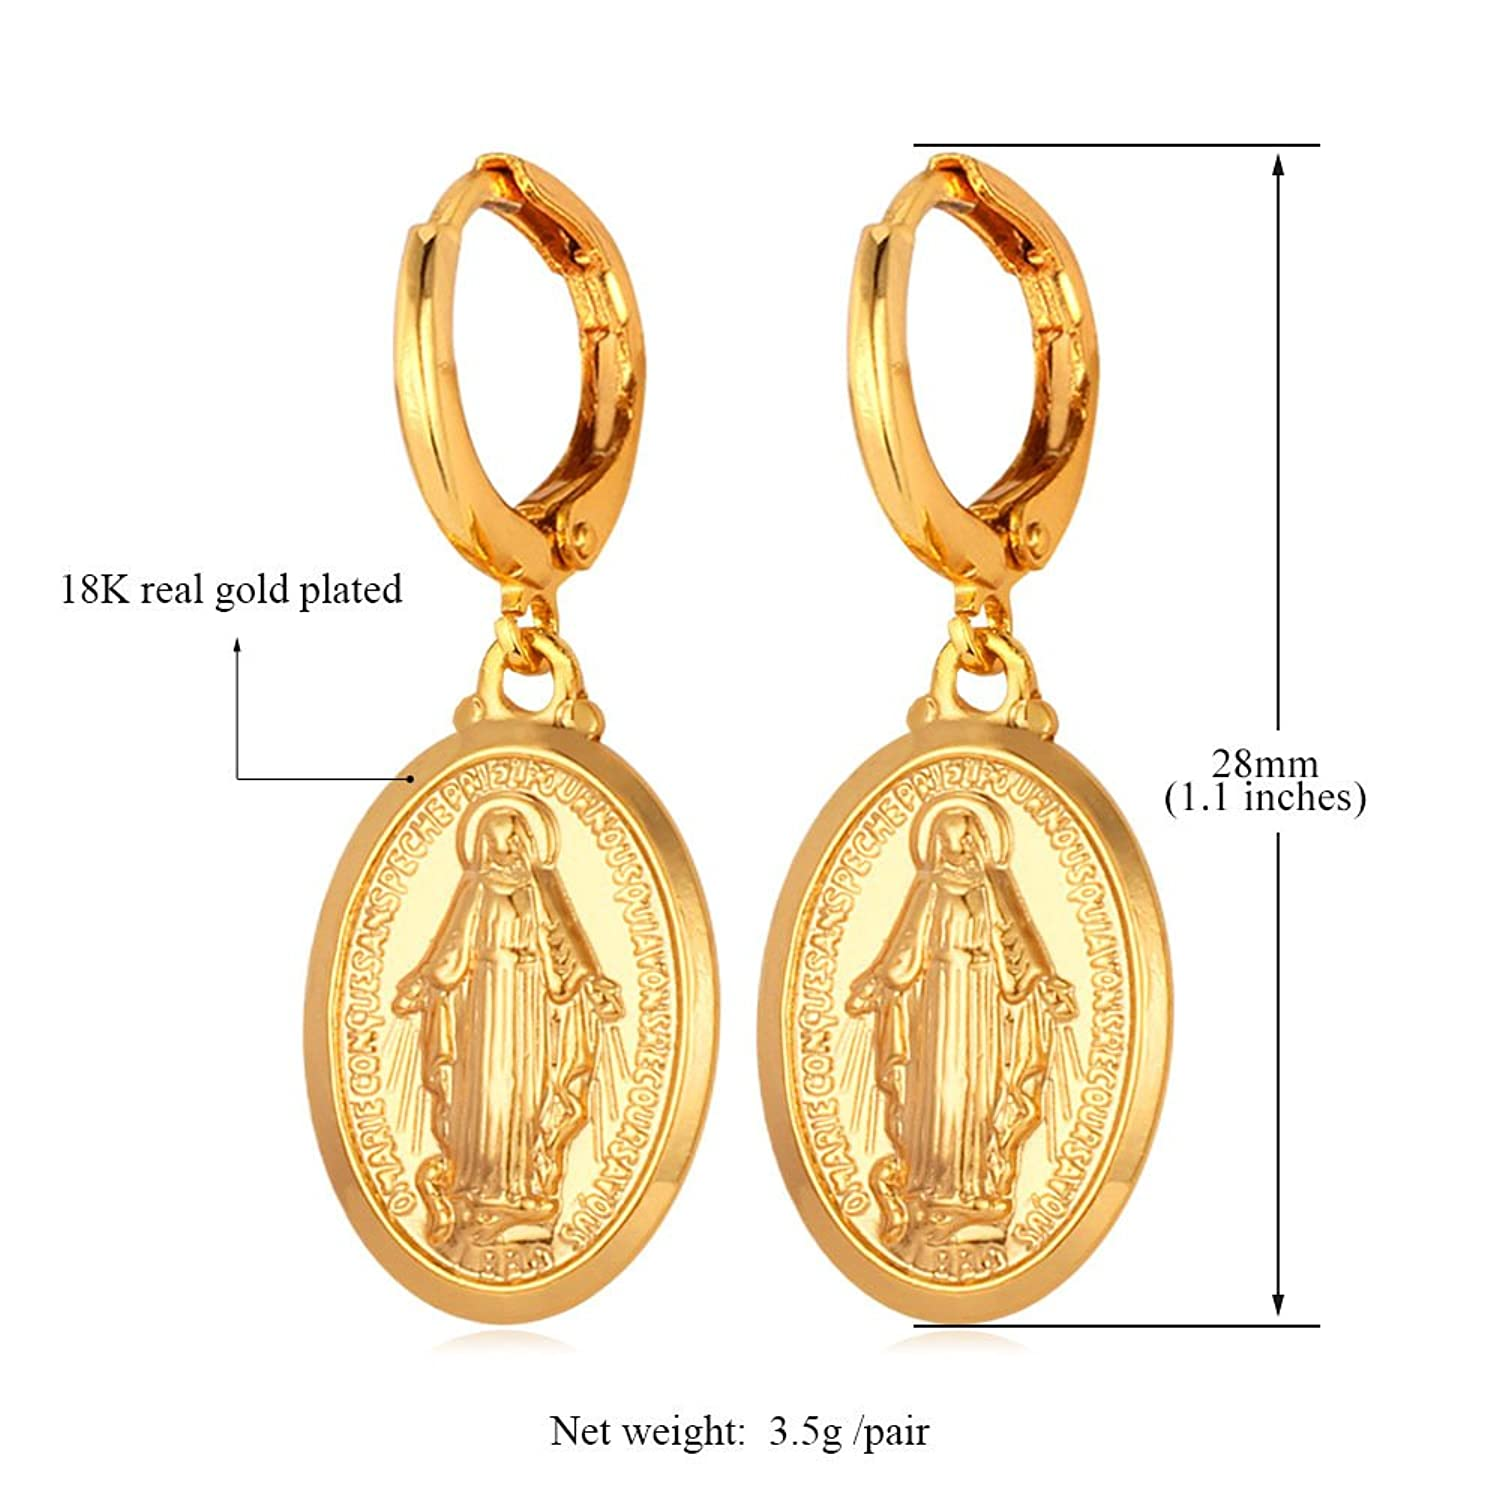 Virgin Mary Drop Earring, Gift For Women, Oval Shape, Gold/Platinum/Rose Gold Plated, Religious Jewellery Christian Earring